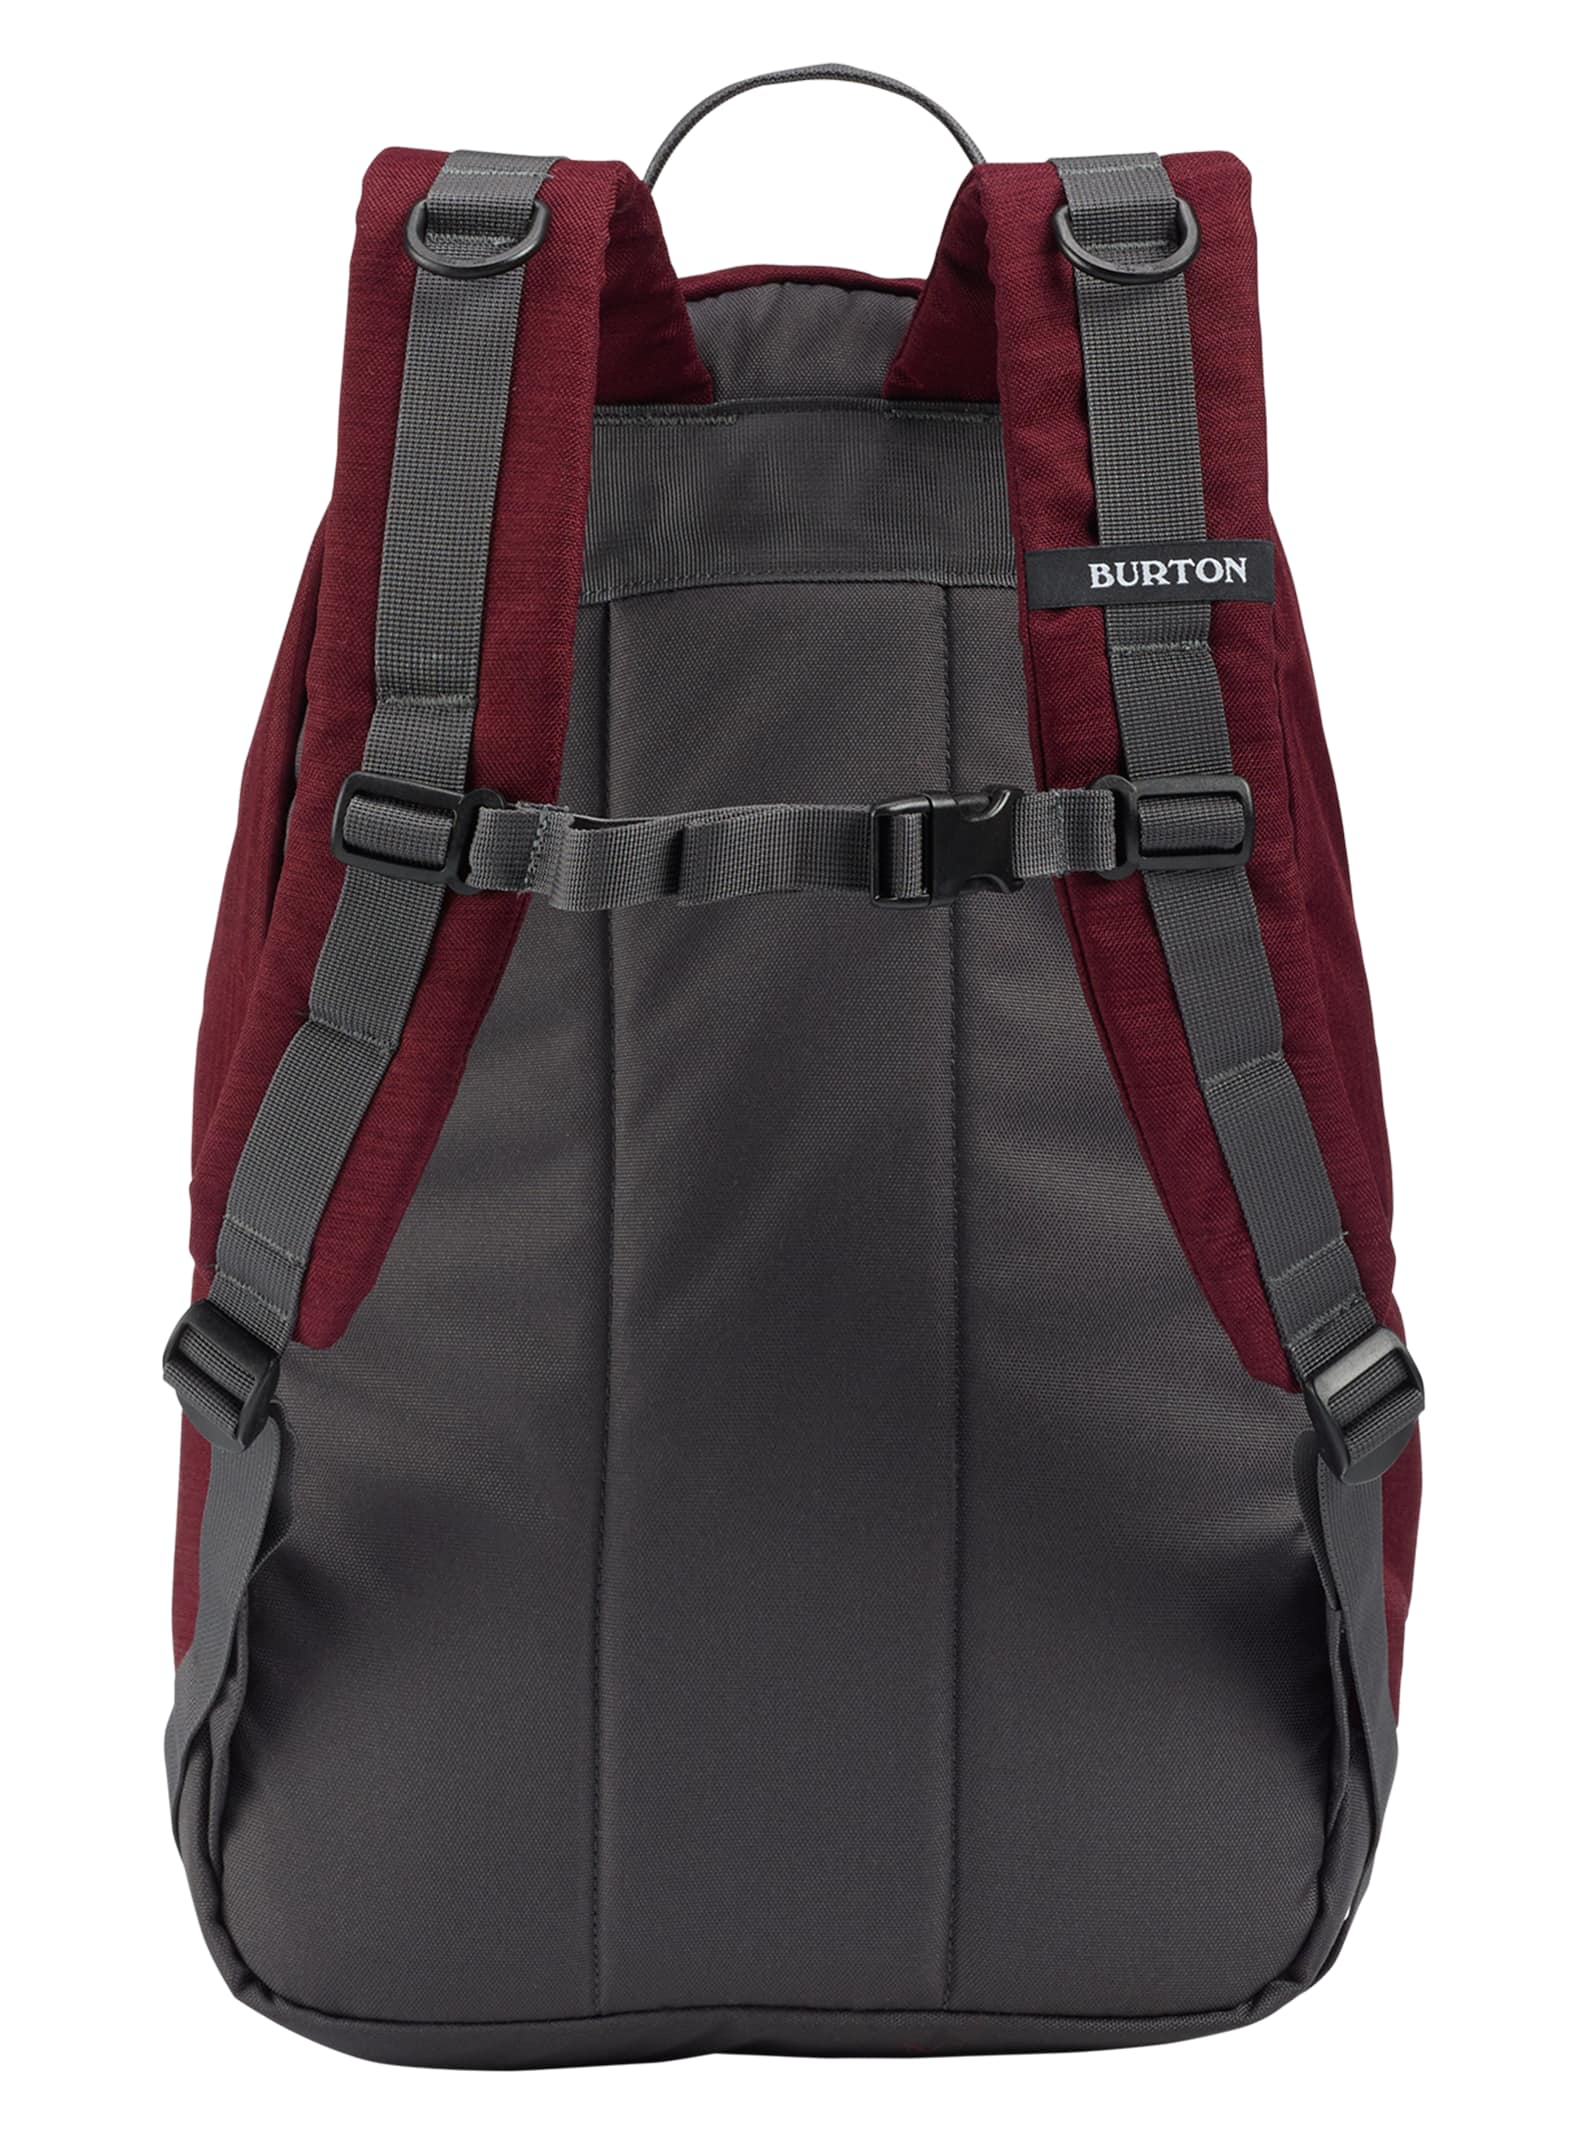 9a41d36f6c942 Burton Kettle Backpack